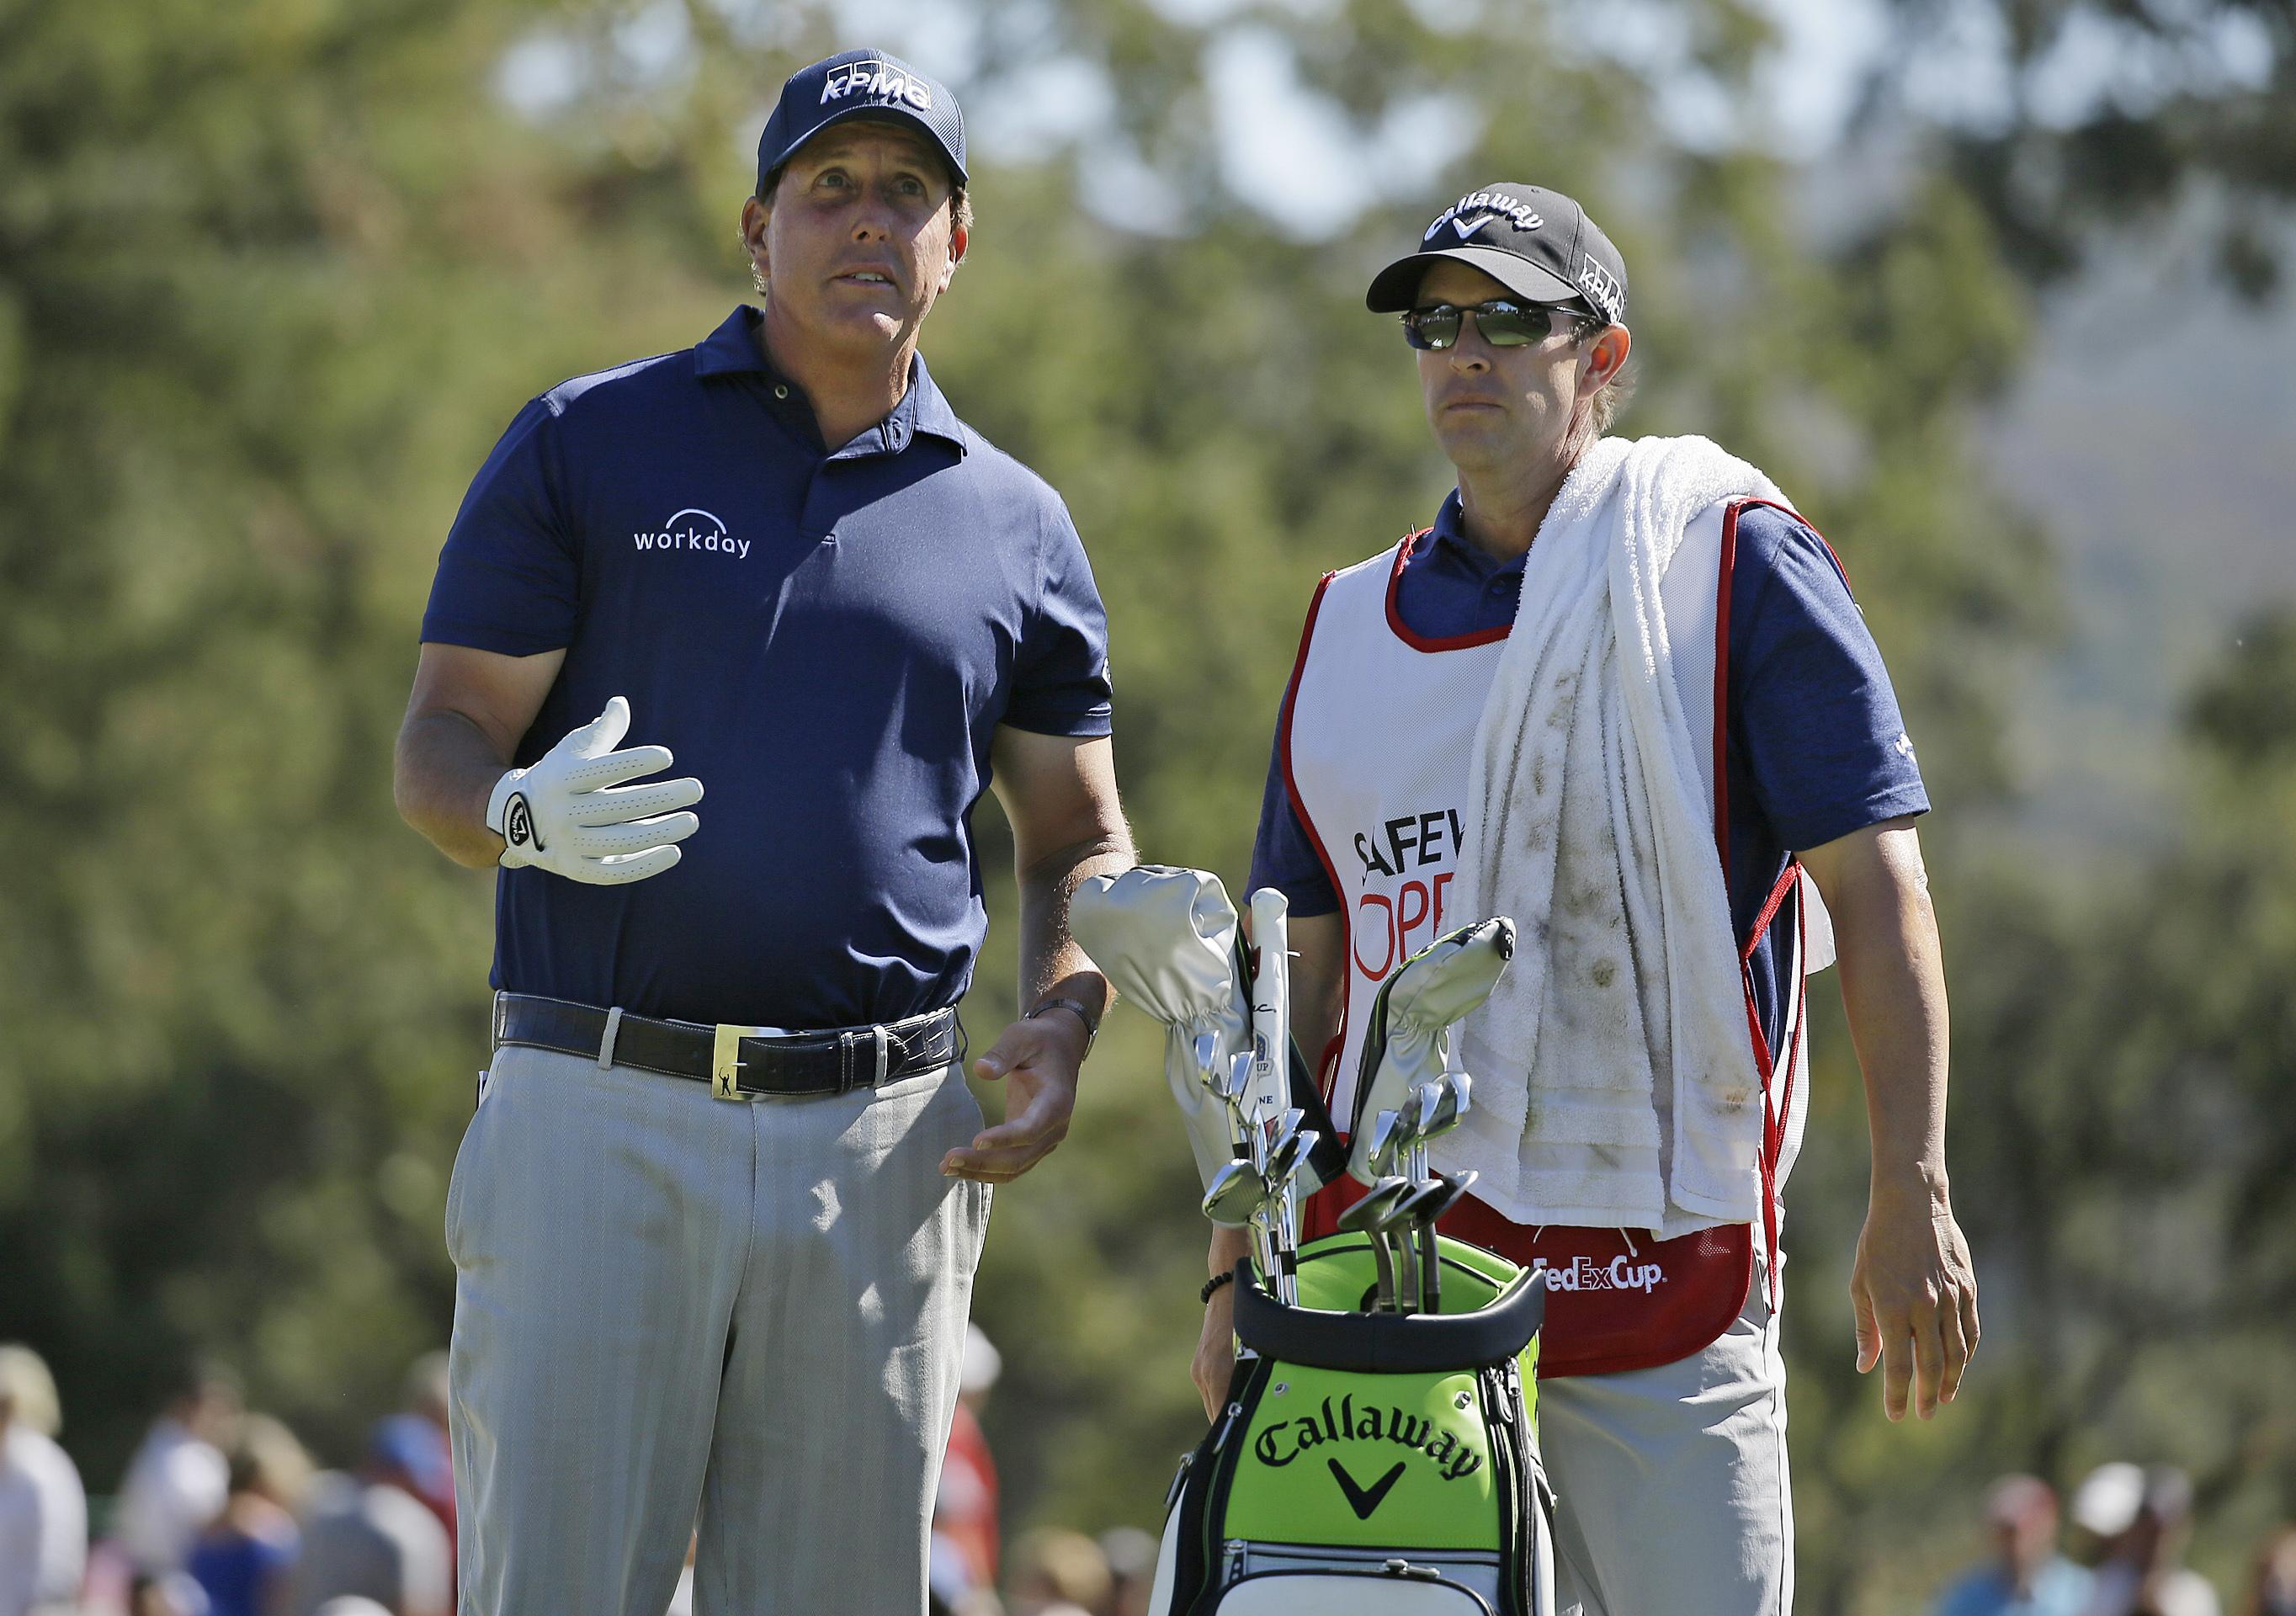 Phil and Tim Mickelson have partnered up on the golf course